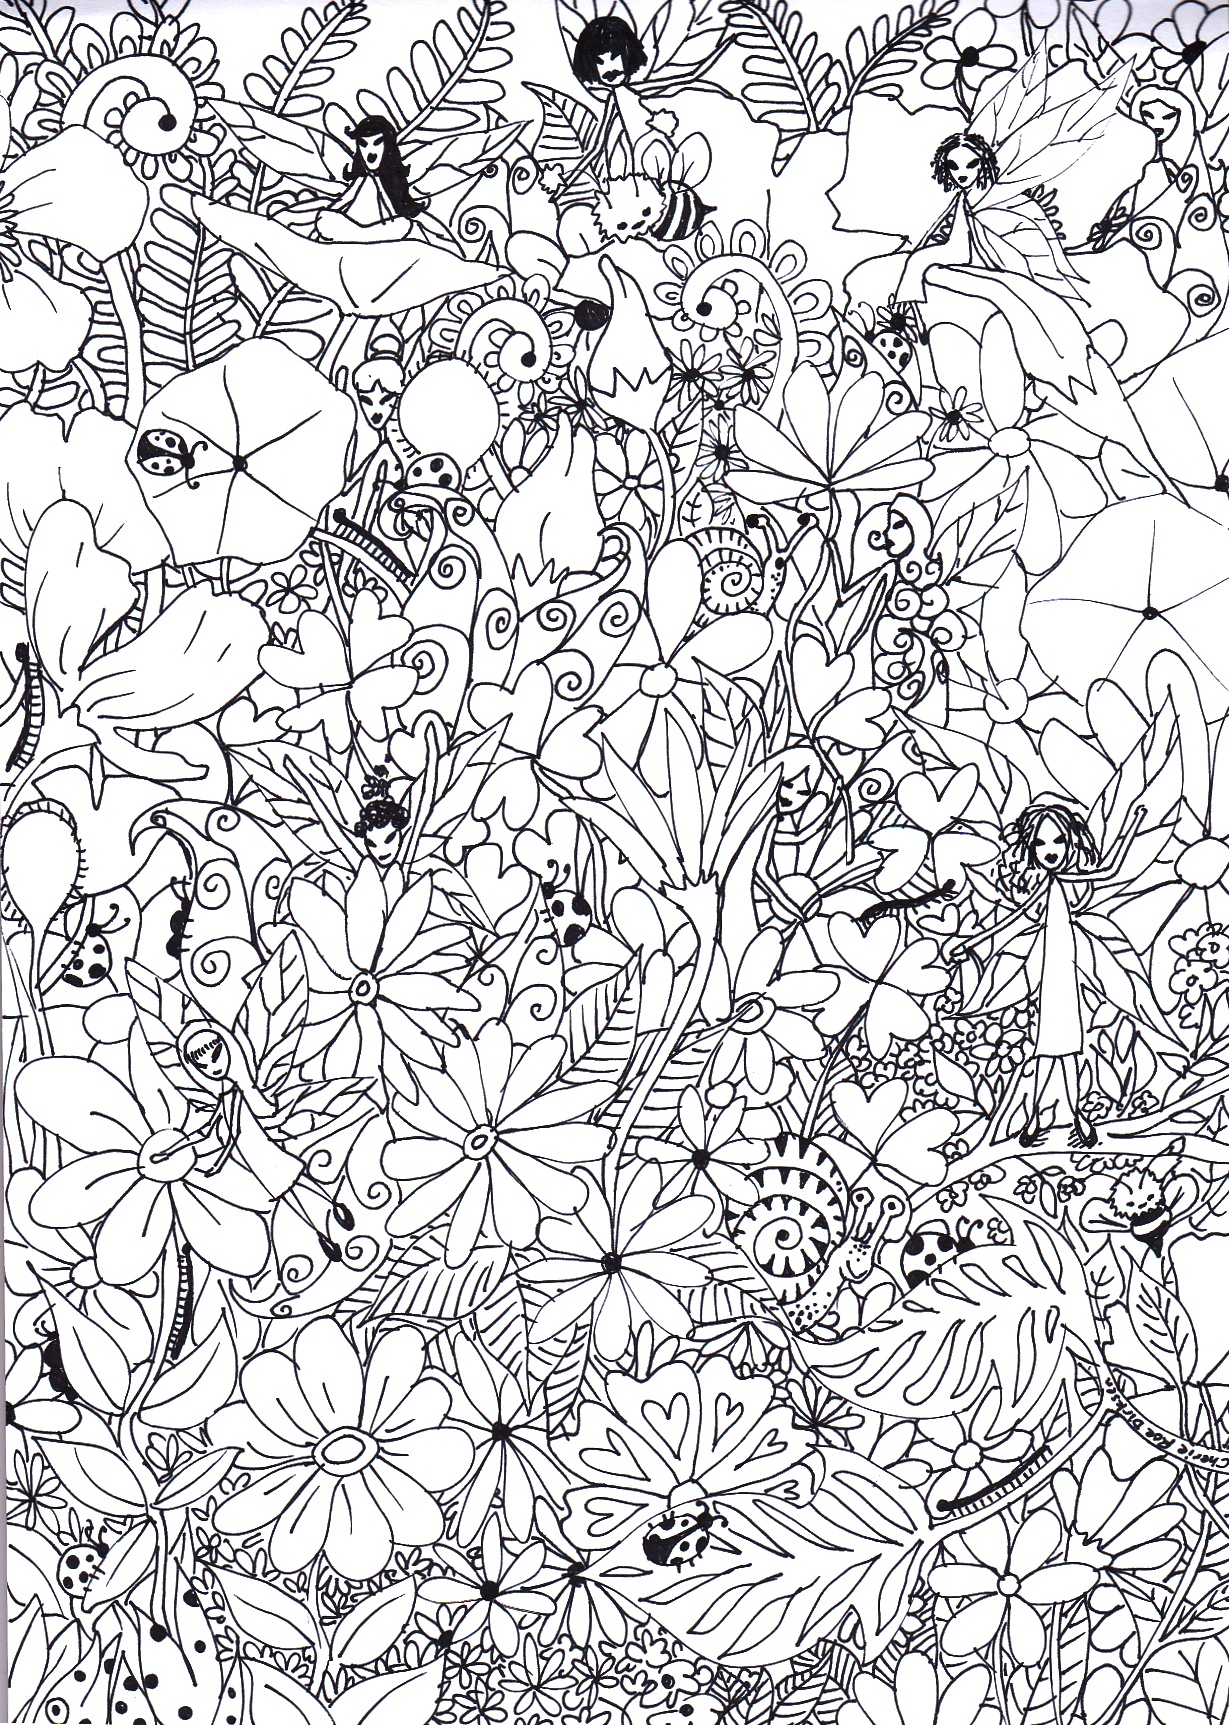 Fairy garden colouring in picture cherie roe dirksen for Garden coloring page